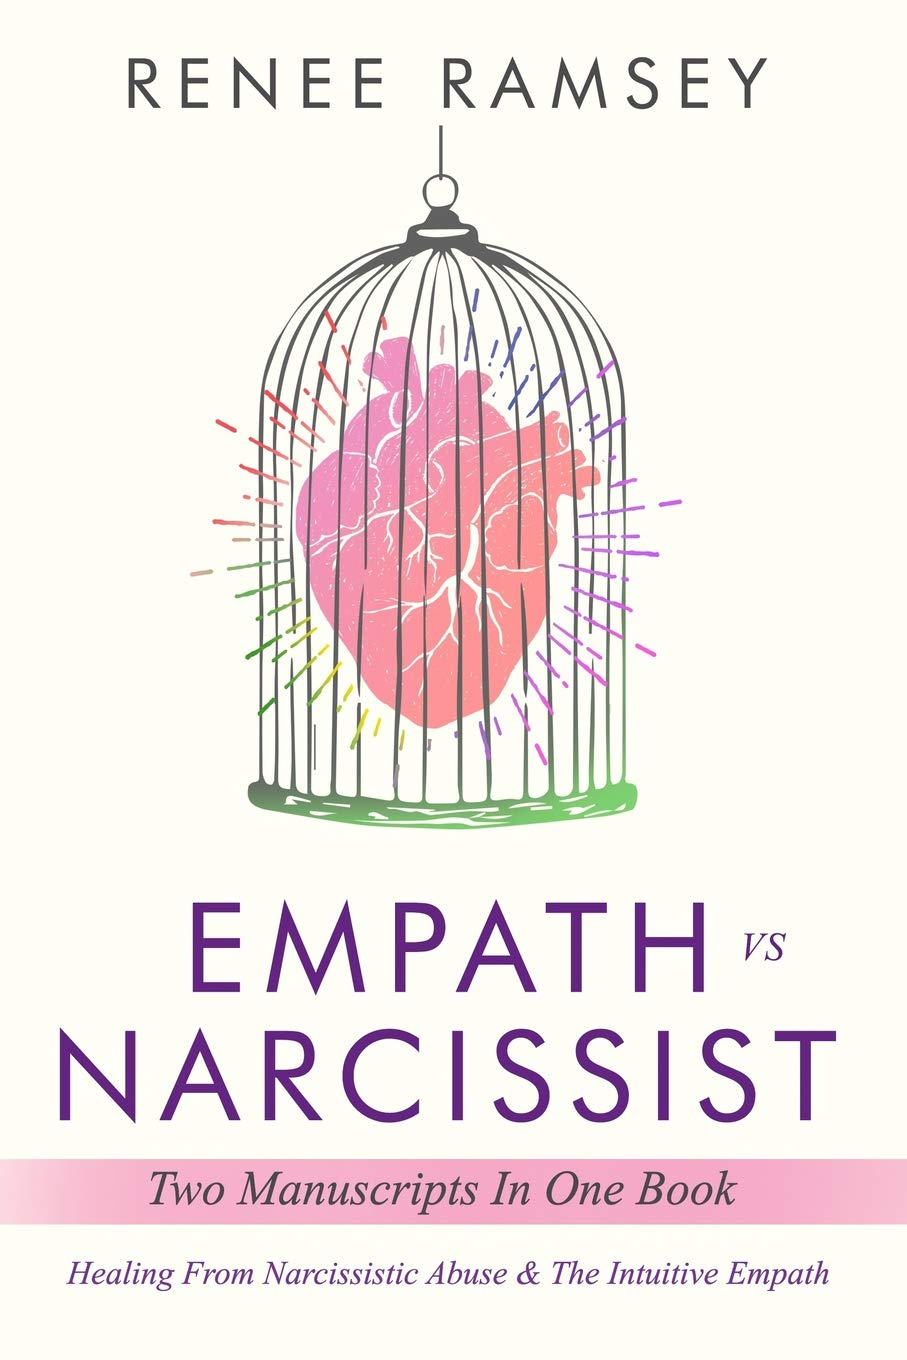 Empath Narcissist Manuscripts Narcissistic Intuitive